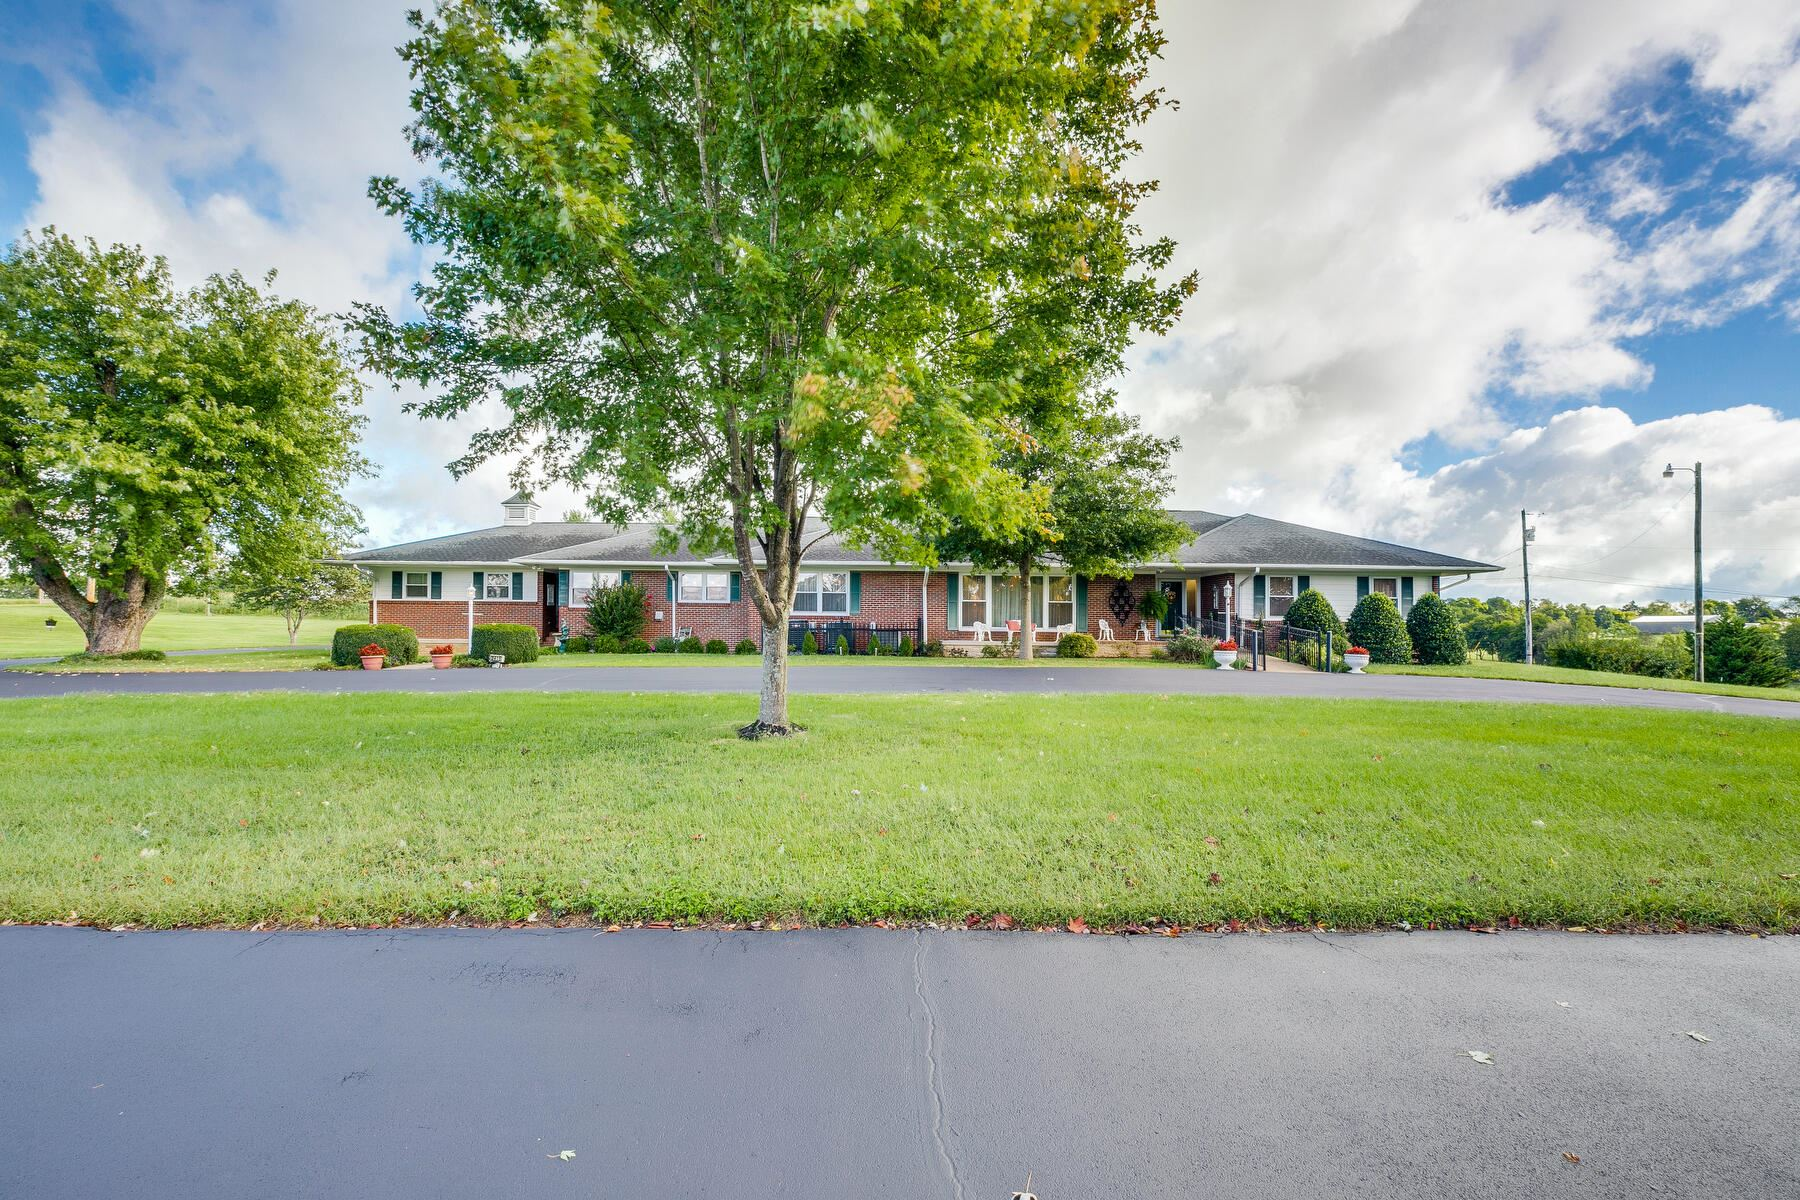 Photo of 3418 Old State Route 34, Limestone, TN 37681 (MLS # 9929007)